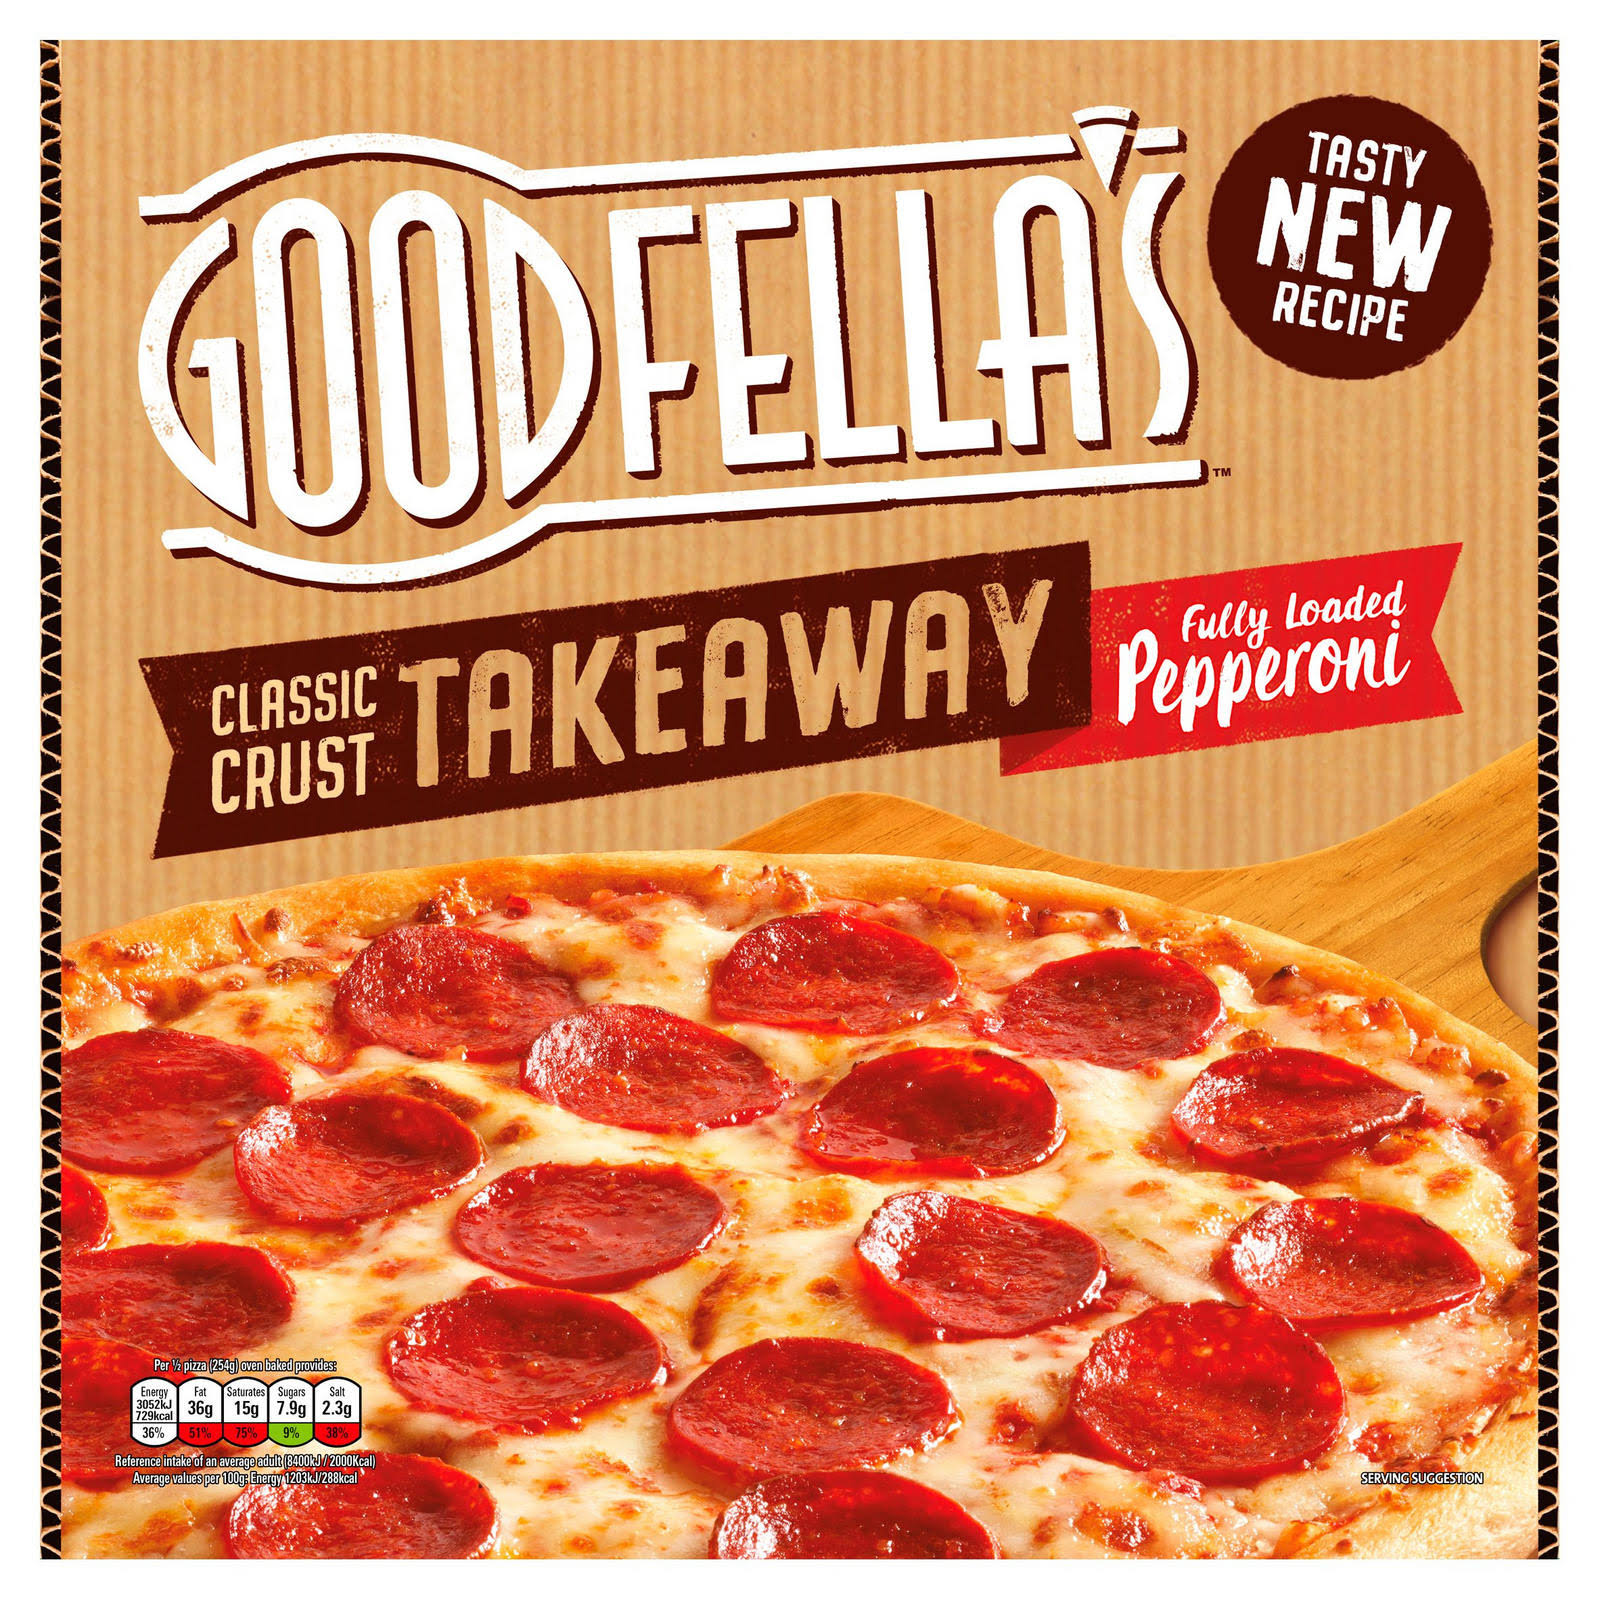 Goodfella s Takeaway Pizza - Pepperoni, 553g